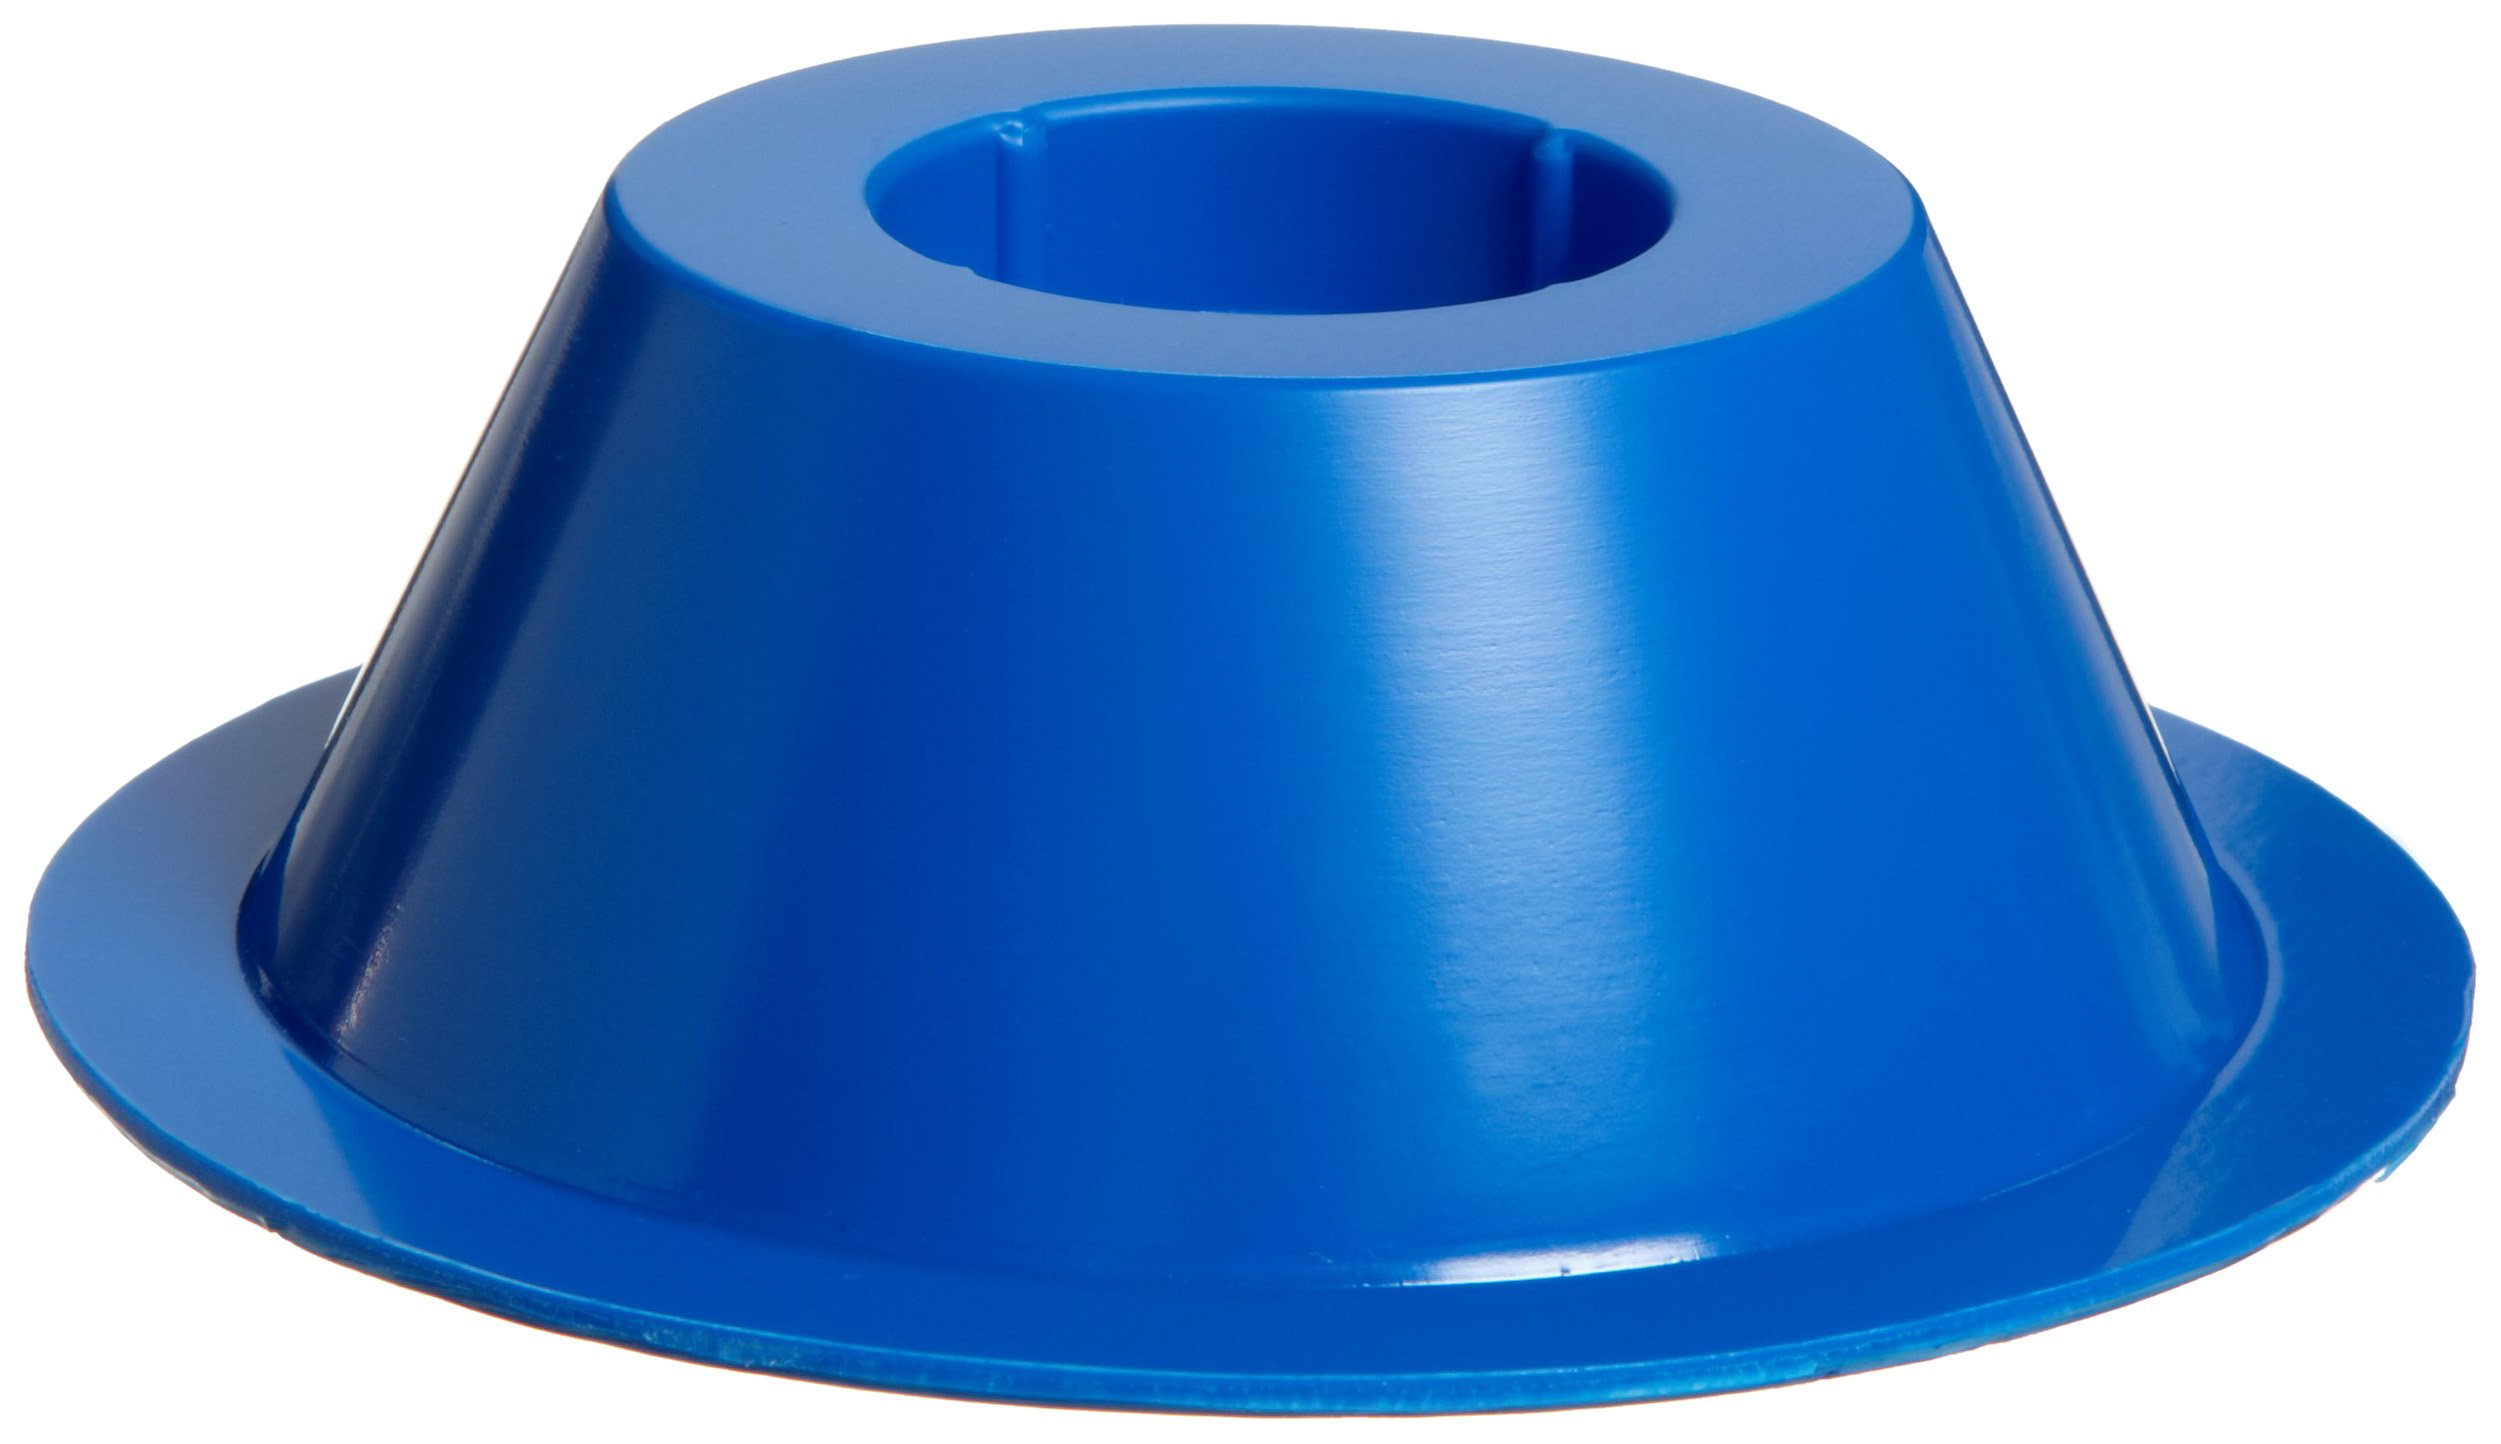 Bel-Art F18795-0001 Conical Tube Holder; 50ml, Grip Style, Polystyrene, Blue (Pack of 5)